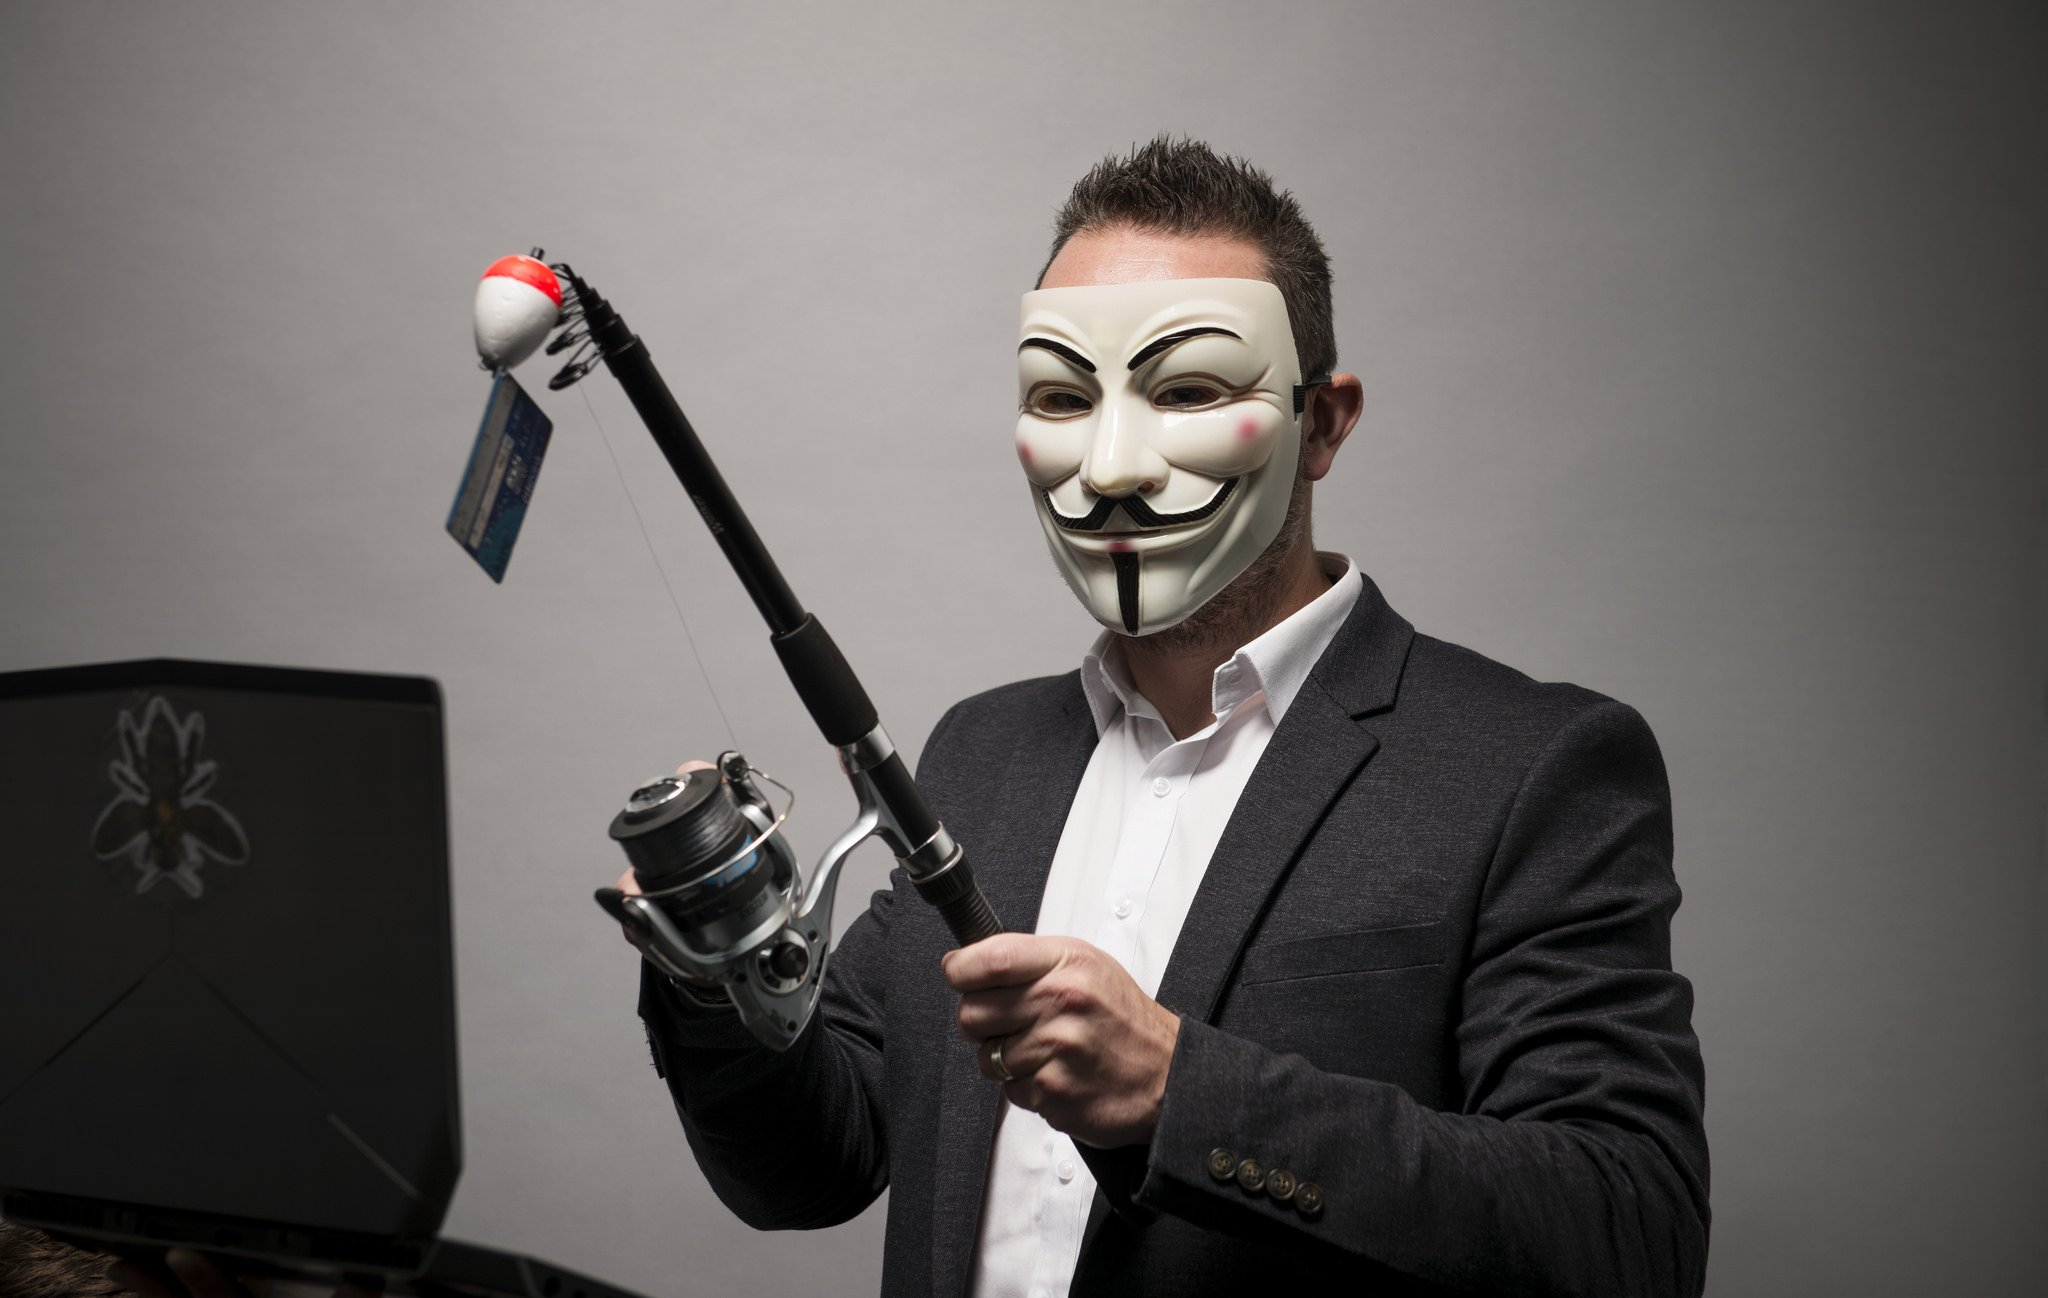 Photo of a man in a Guy Fawkes mask, with a fishing reel in hand.